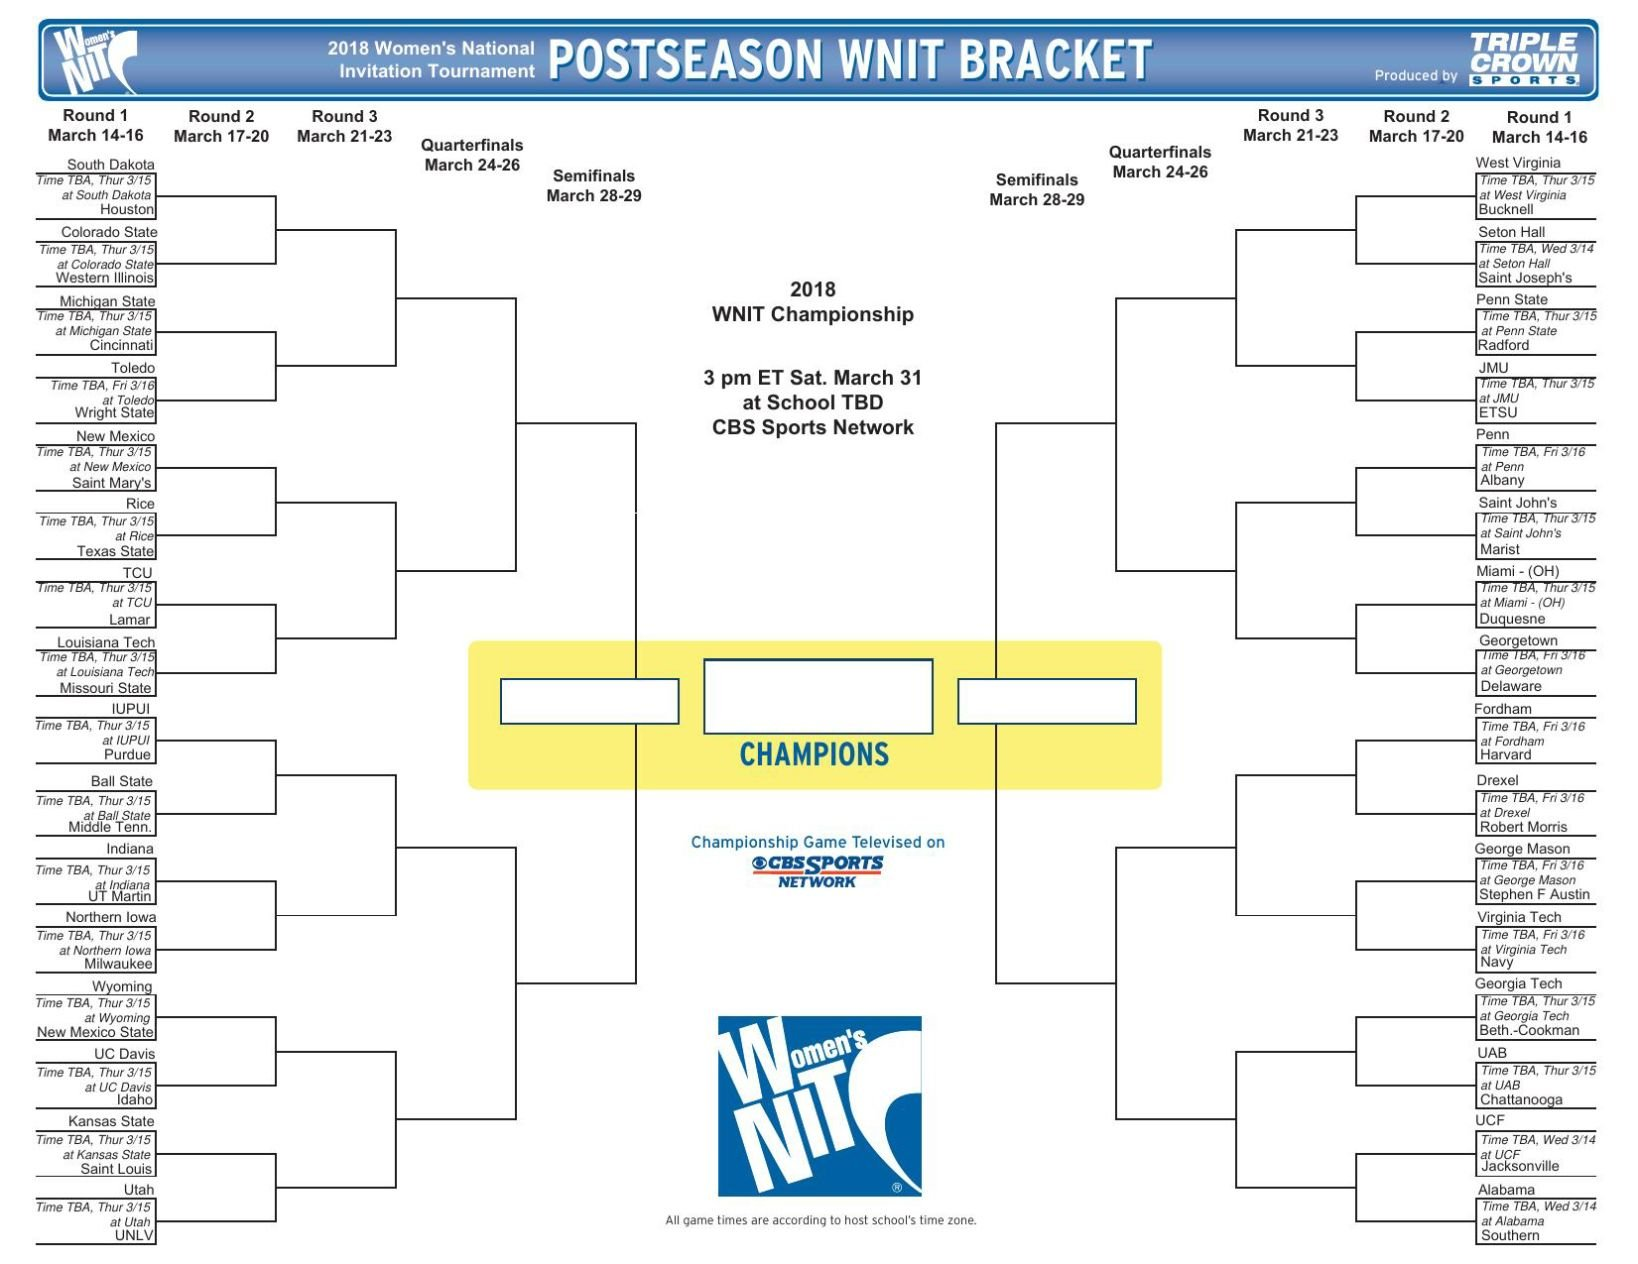 photo relating to Printable Nit Bracket referred to as 2018 Womens NIT Bracket Basketball